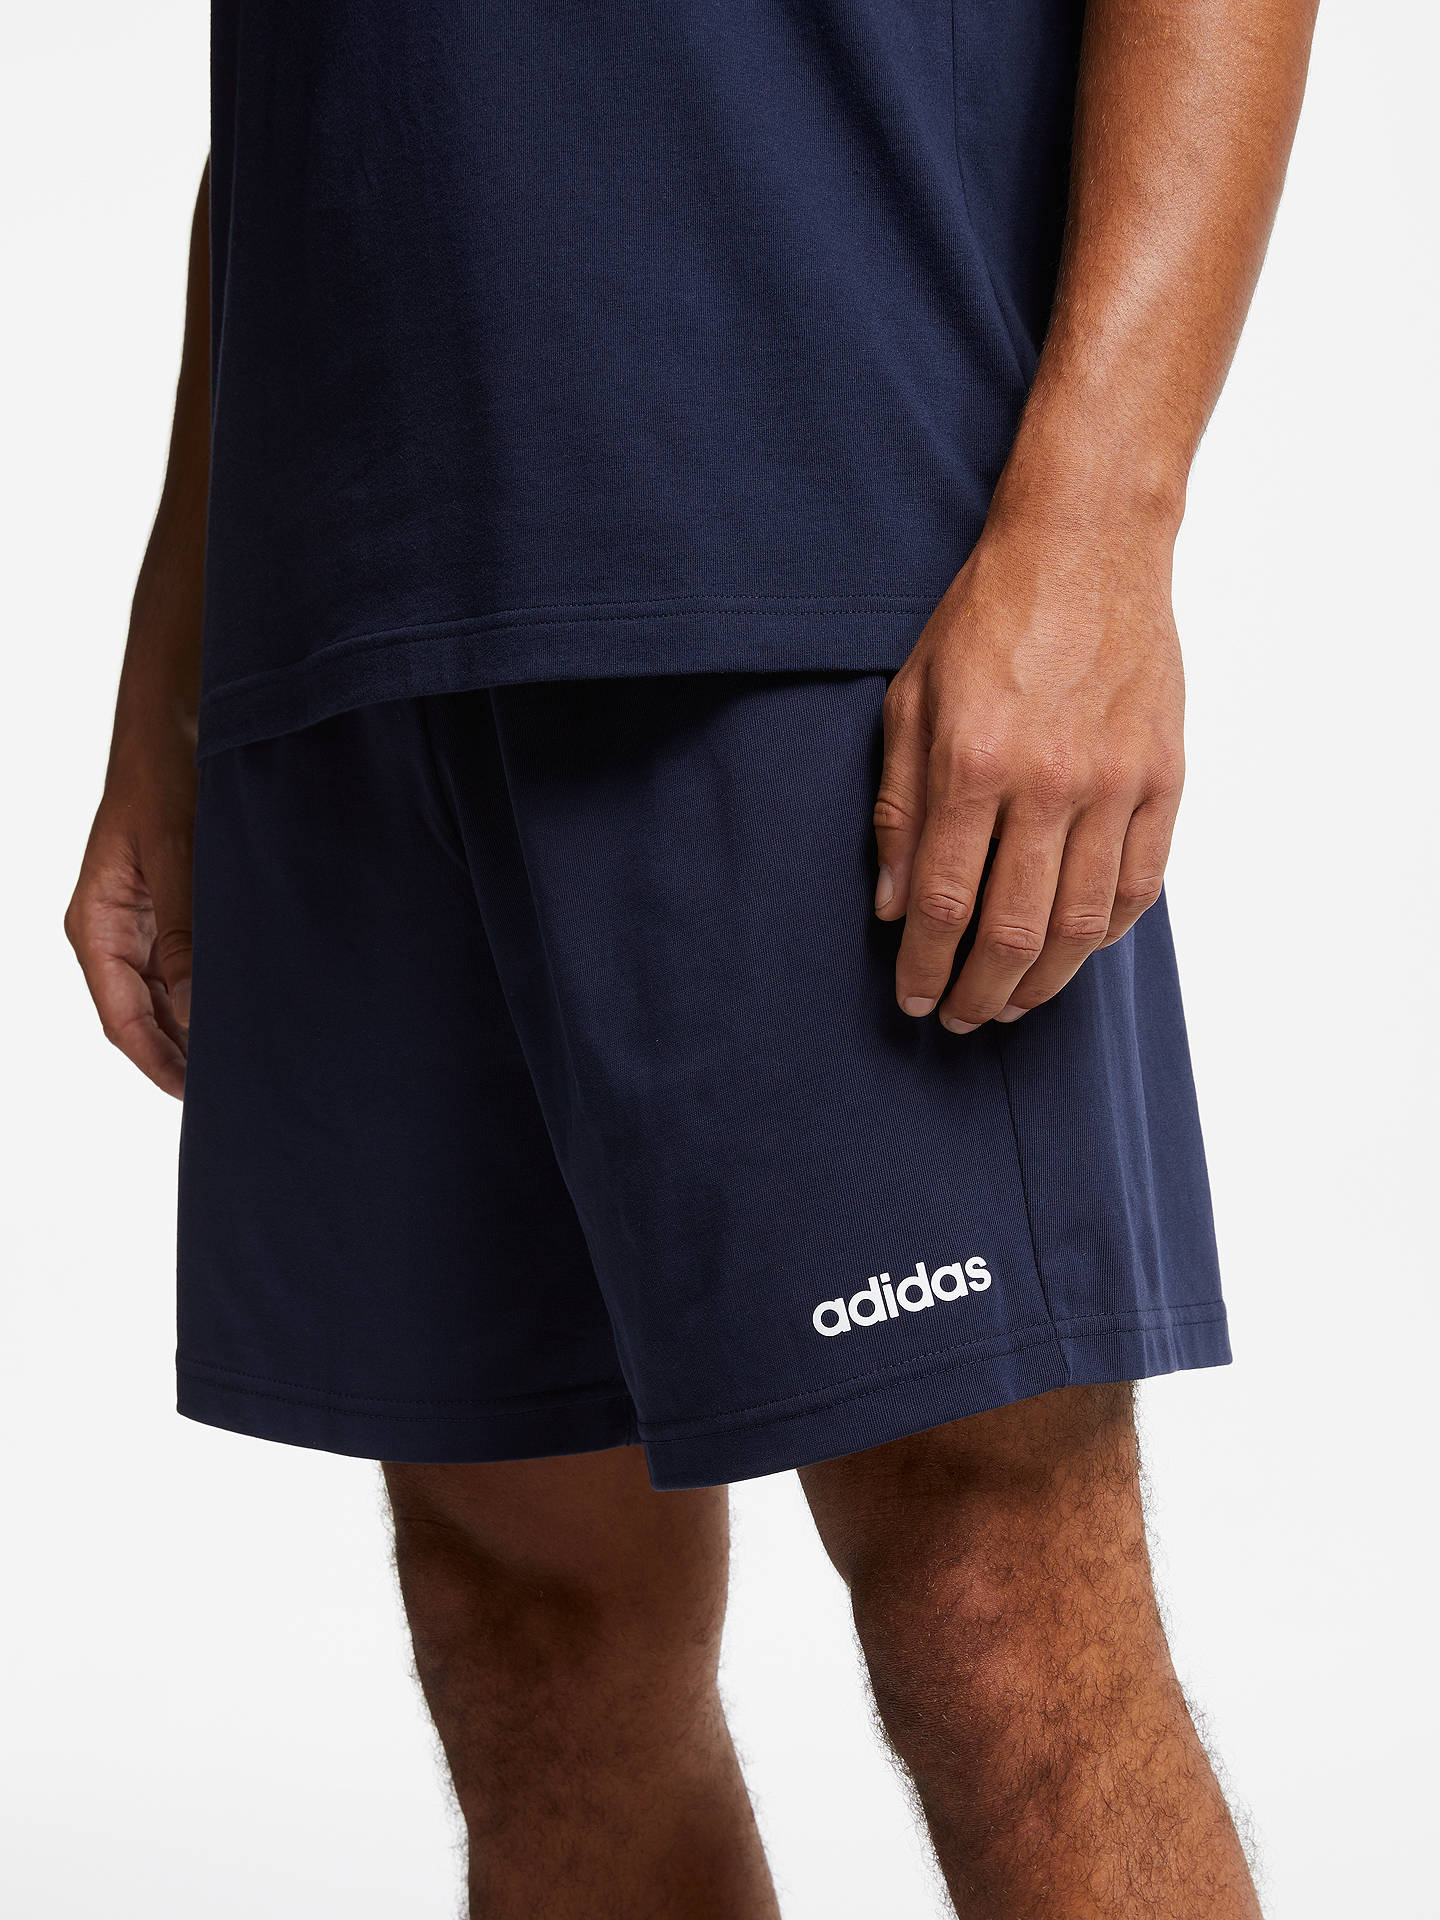 ShortsLegend Essentials Jersey Adidas Single Ink Plain gyb7Yf6